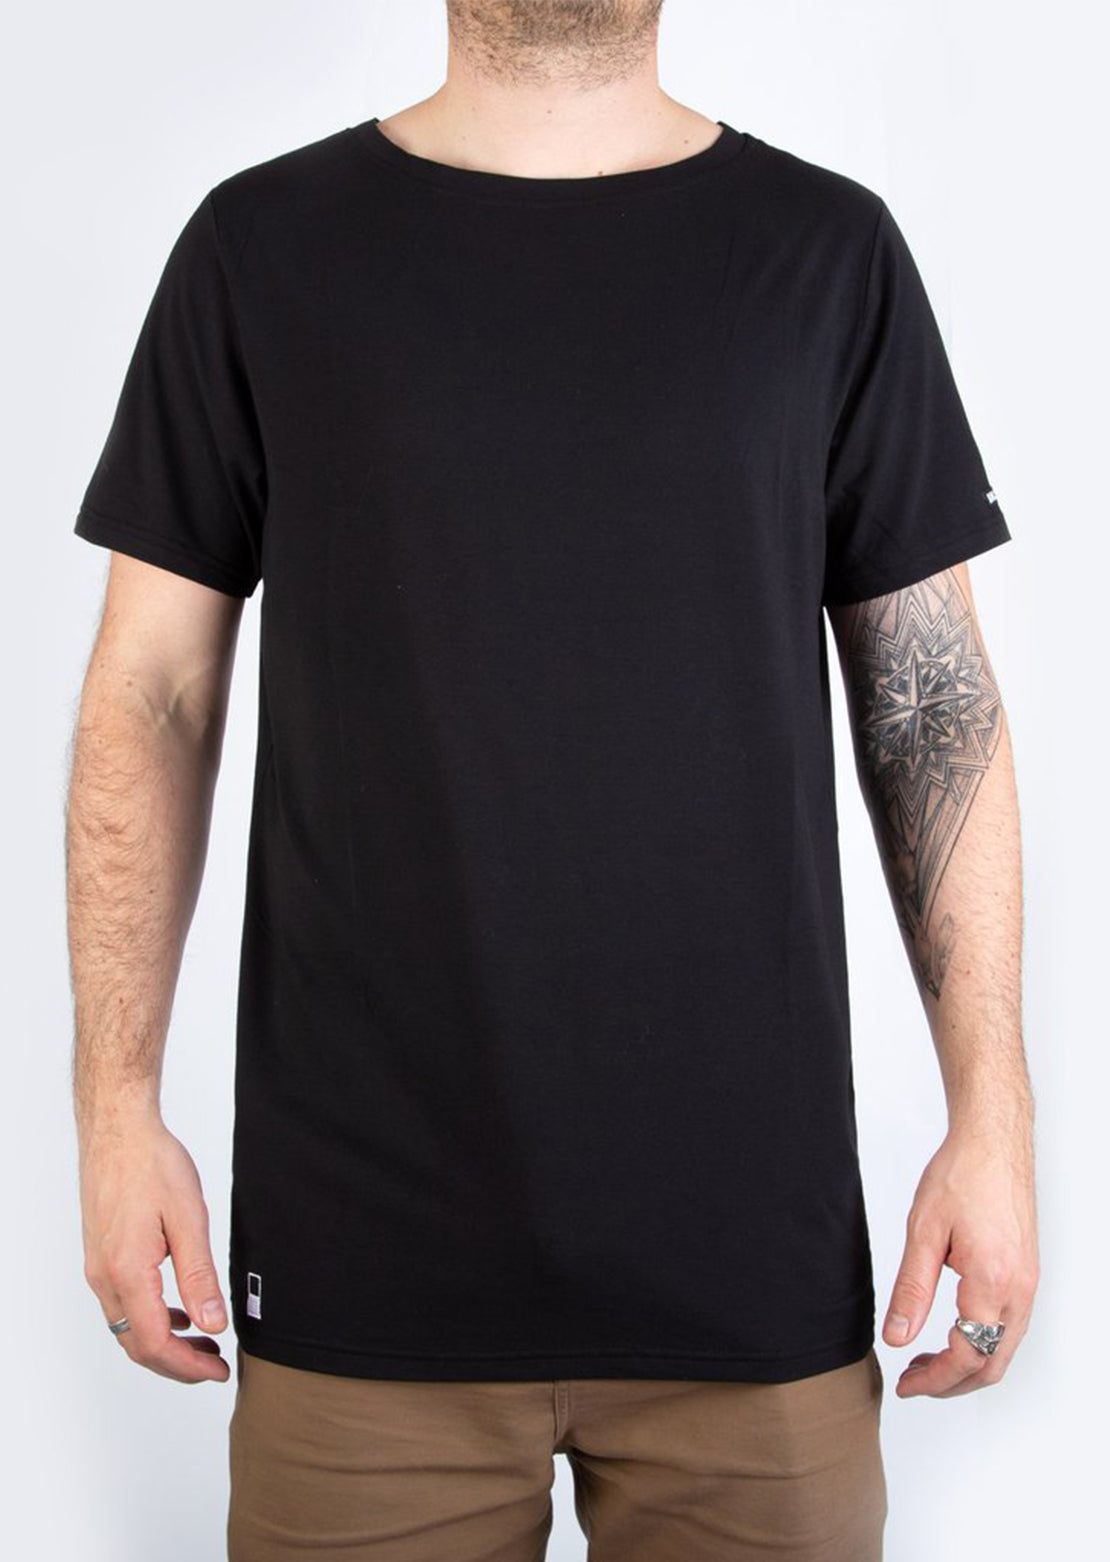 BN3TH Men's Short Sleeve Shirt - Model Front